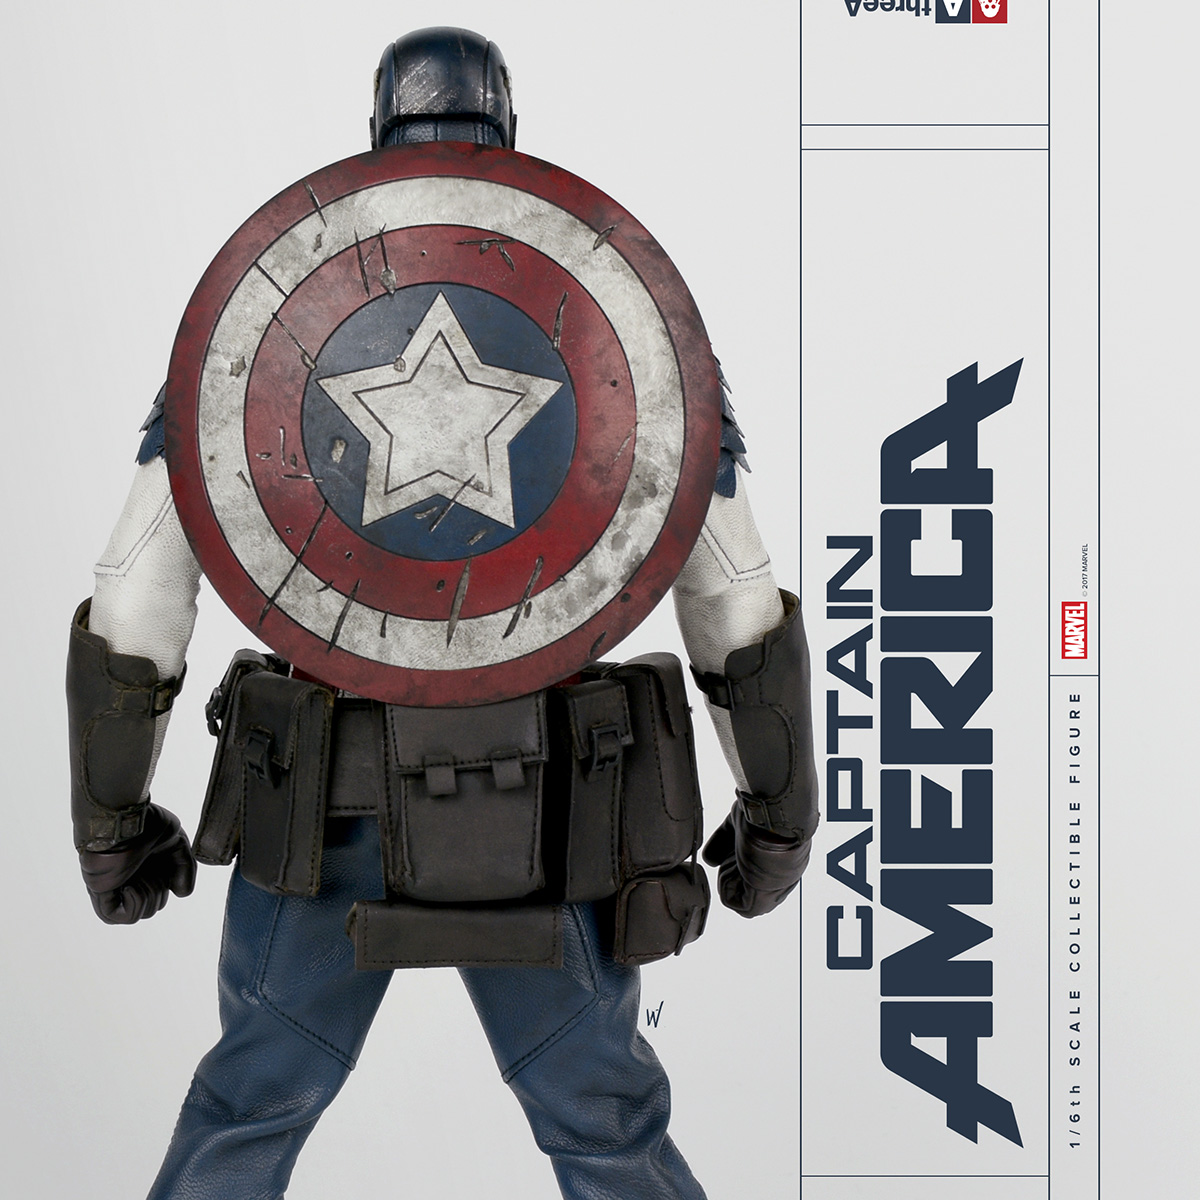 3A_Marvel_CaptainAmerica_Square_Ad_002brev.jpg